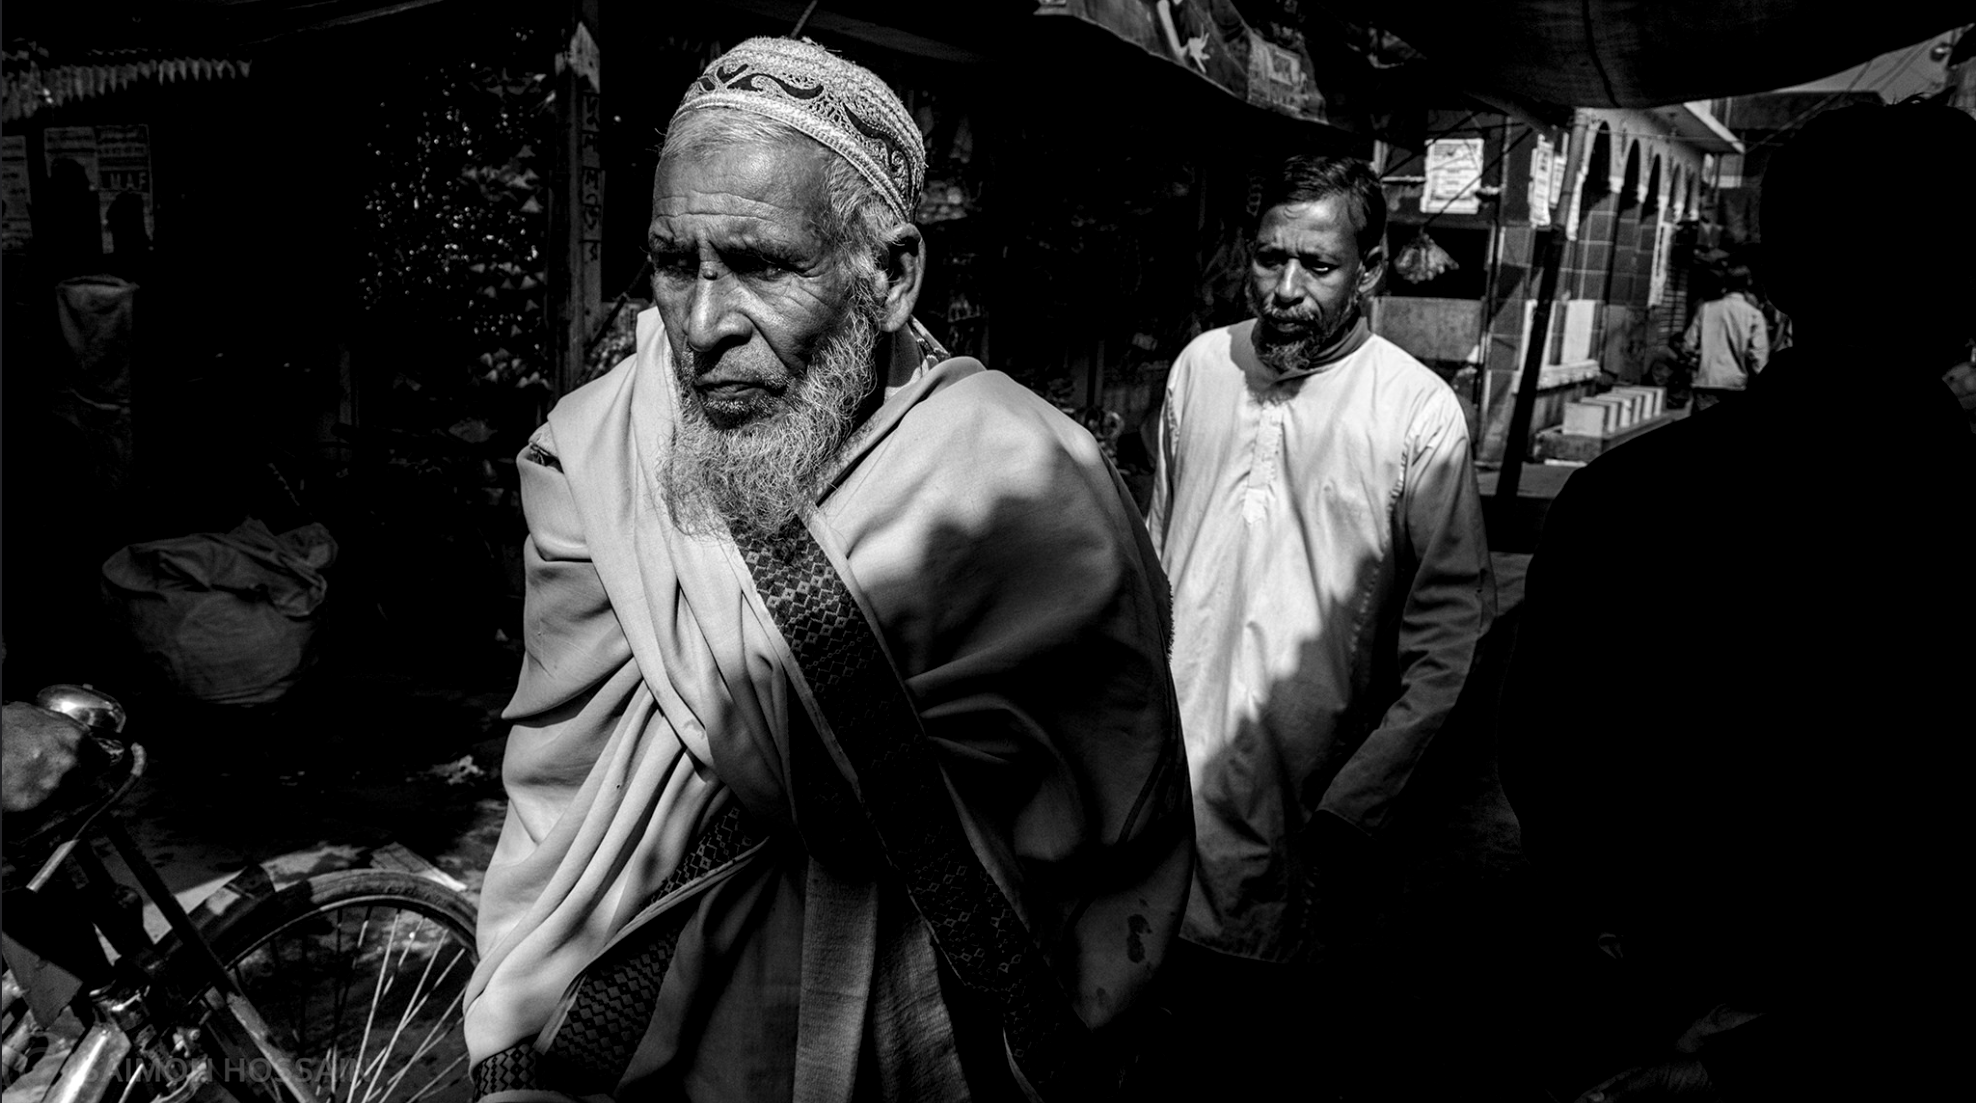 photo: SaiMon HoSain